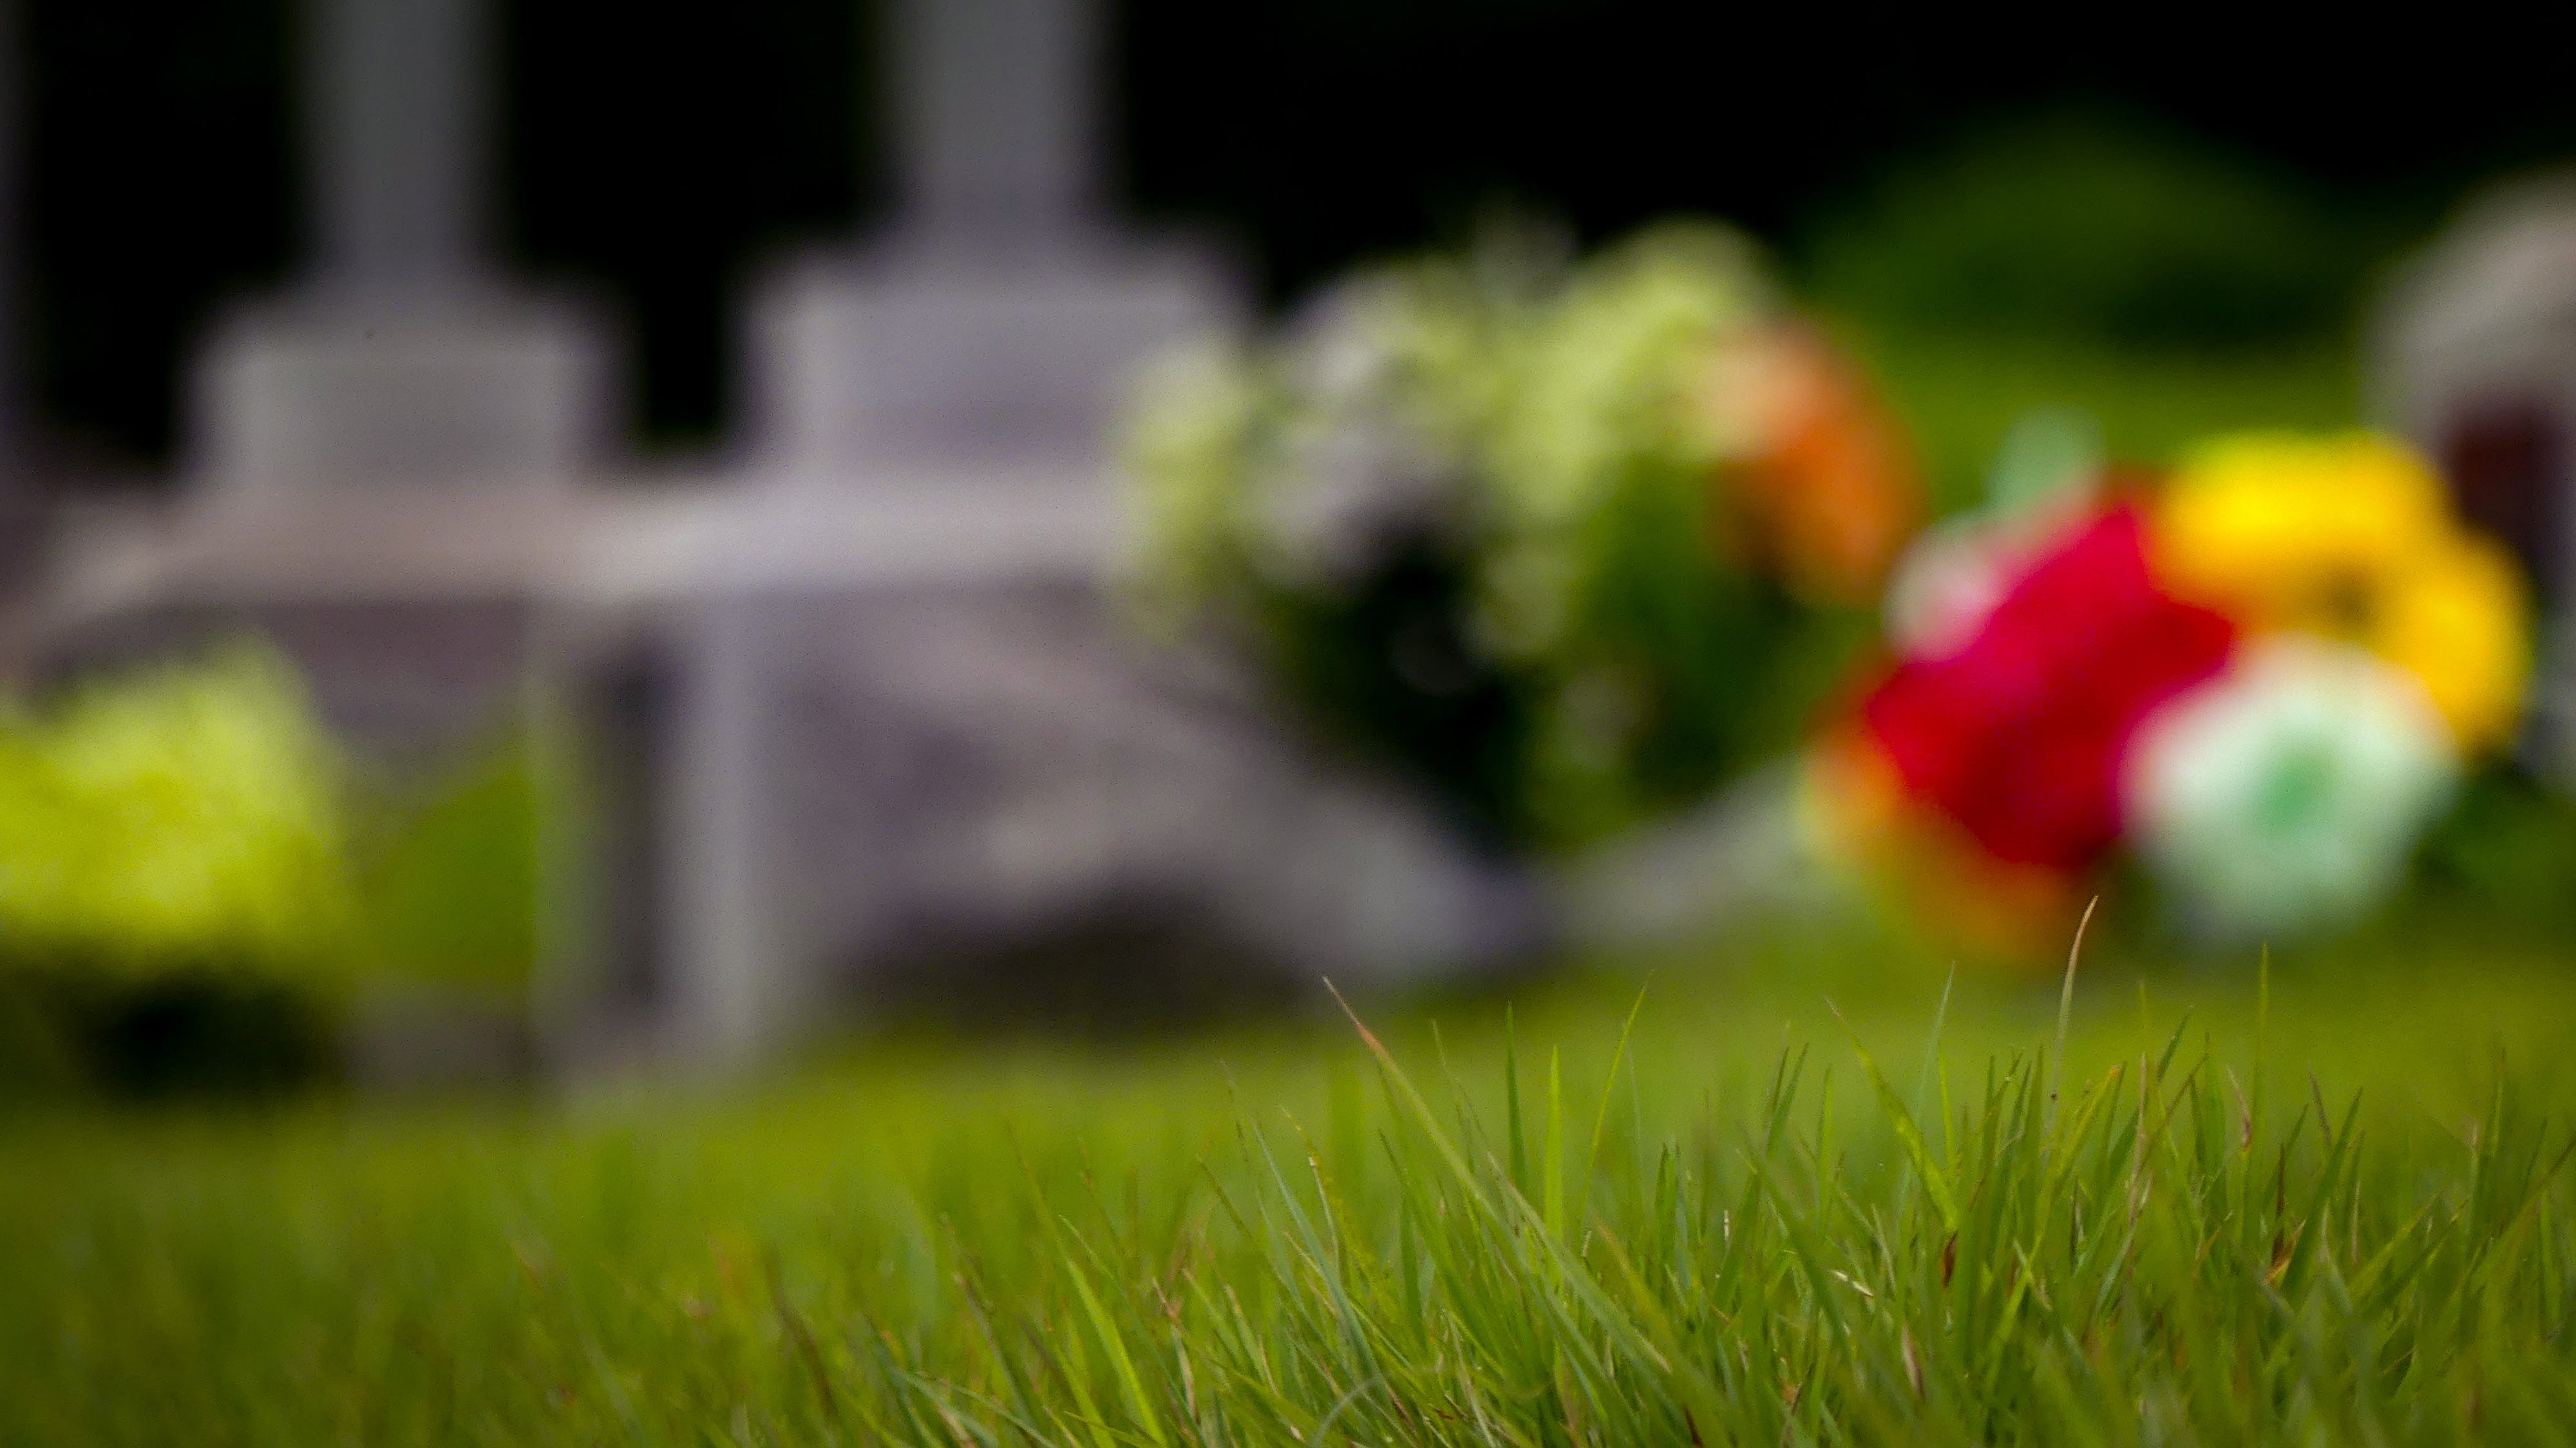 Free stock photo of 현충원, national cemetery